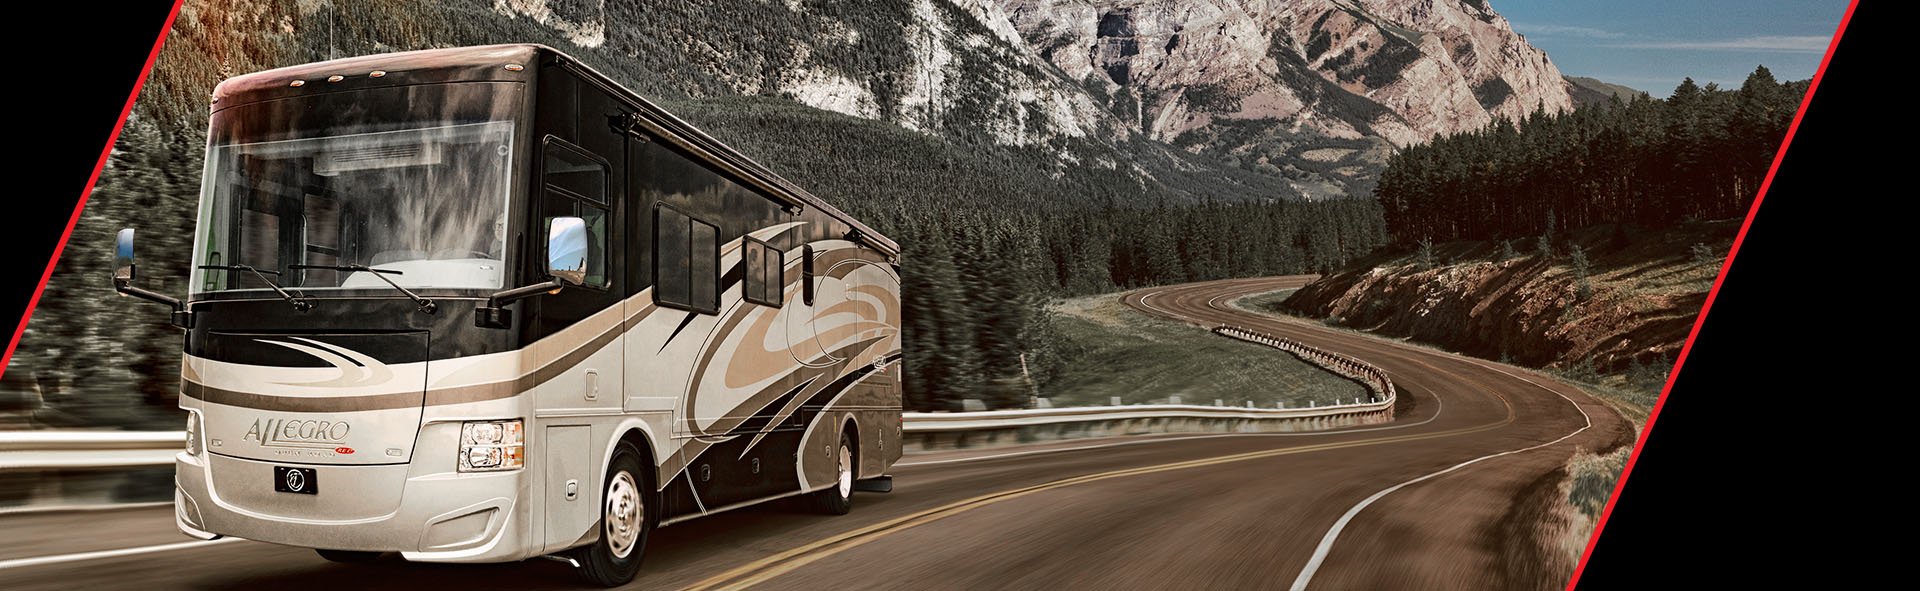 blog-header-dewinterize-your-rv